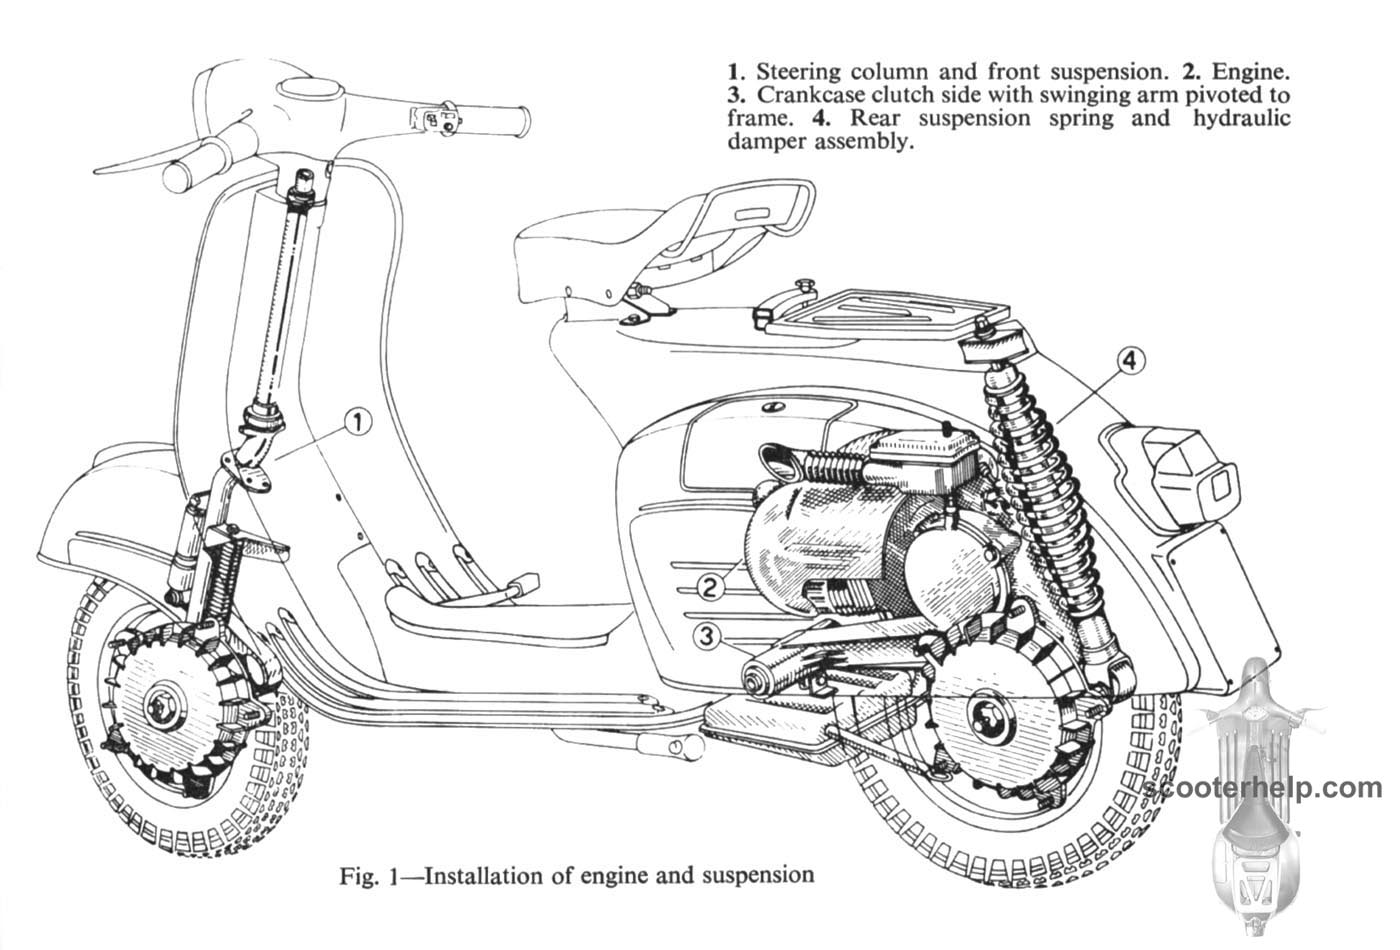 vespa 150 sprint owner s manual rh scooterhelp com vespa primavera 50 owner's manual vespa primavera 50 owner's manual